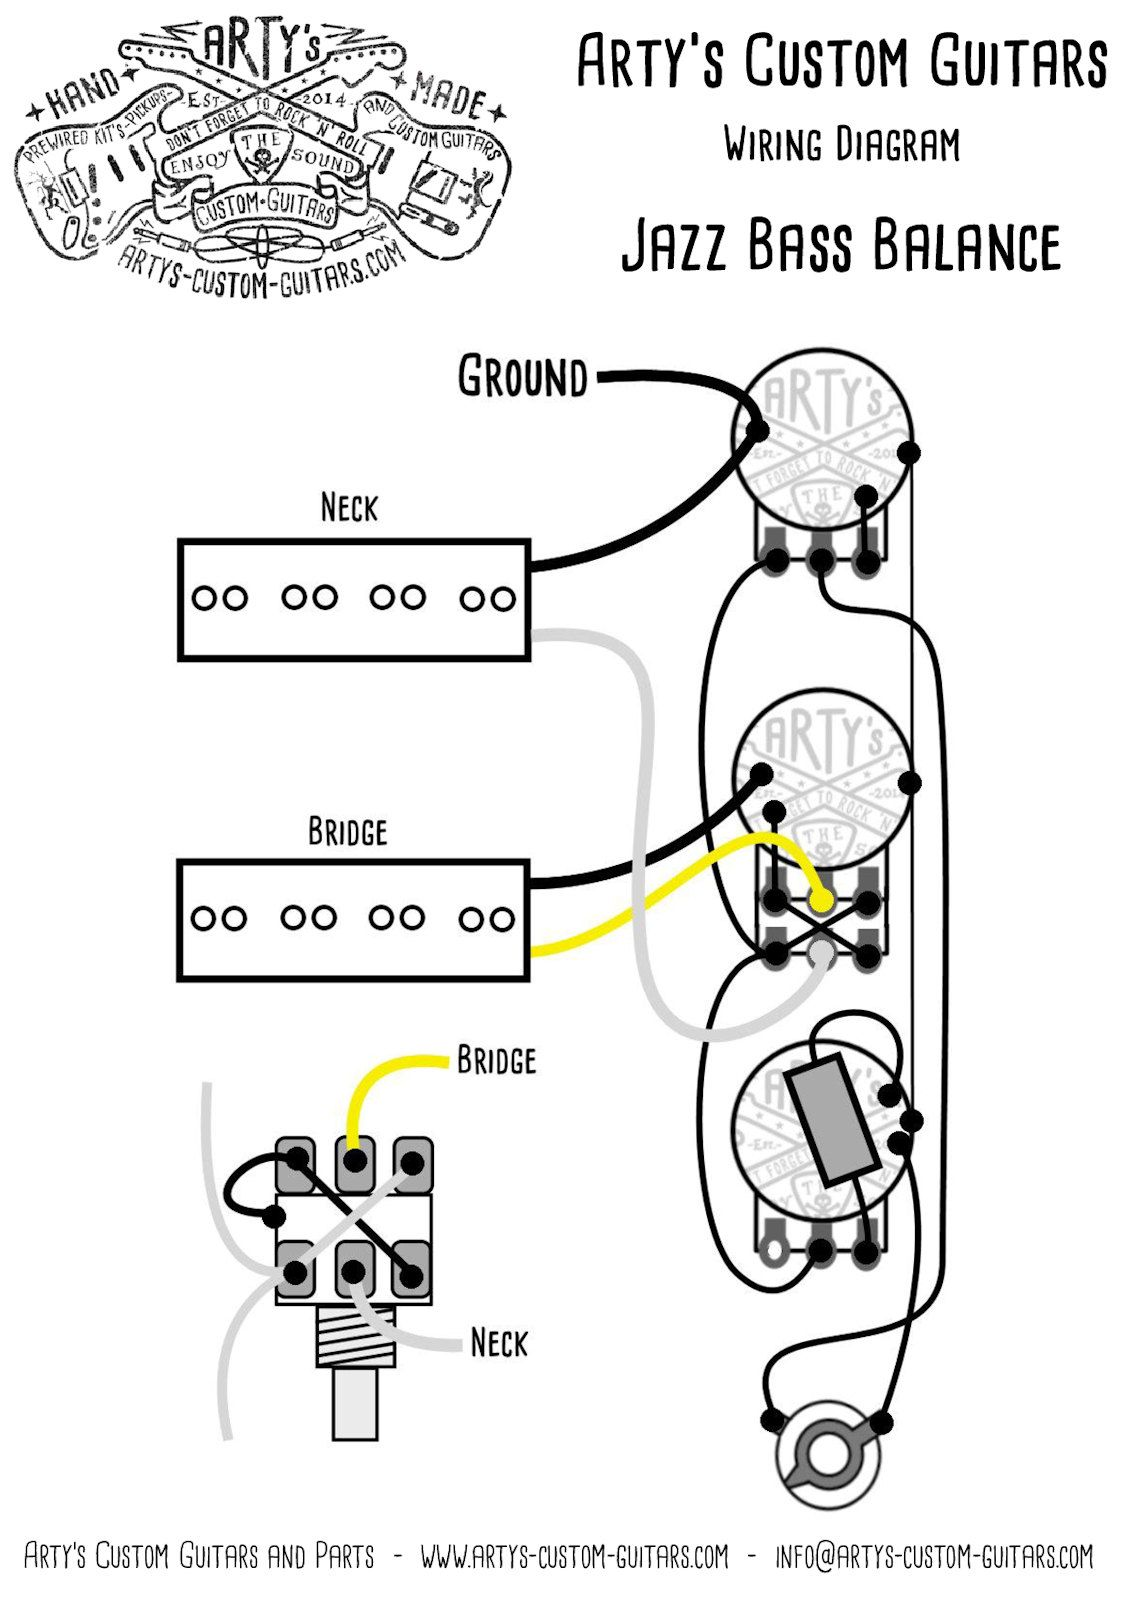 Arty's Custom Guitars Vintage Balance prewired Kit wiring